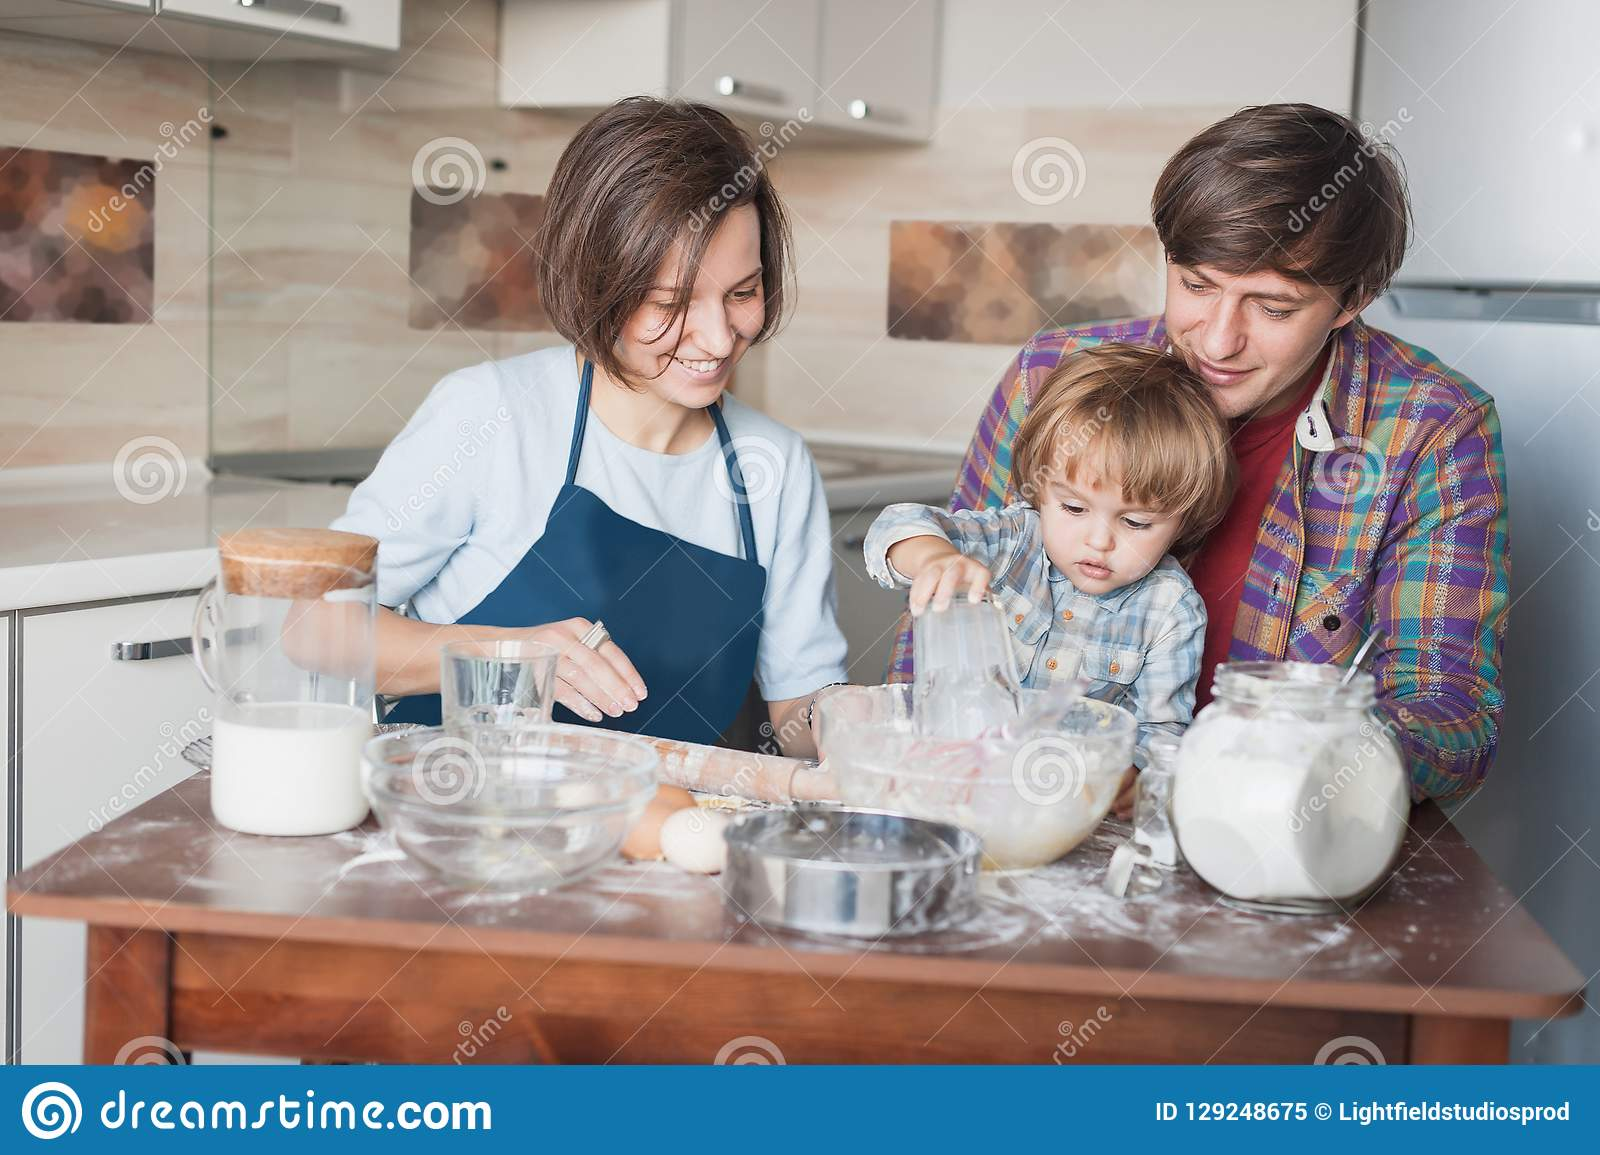 happy young family preparing dough for cookies